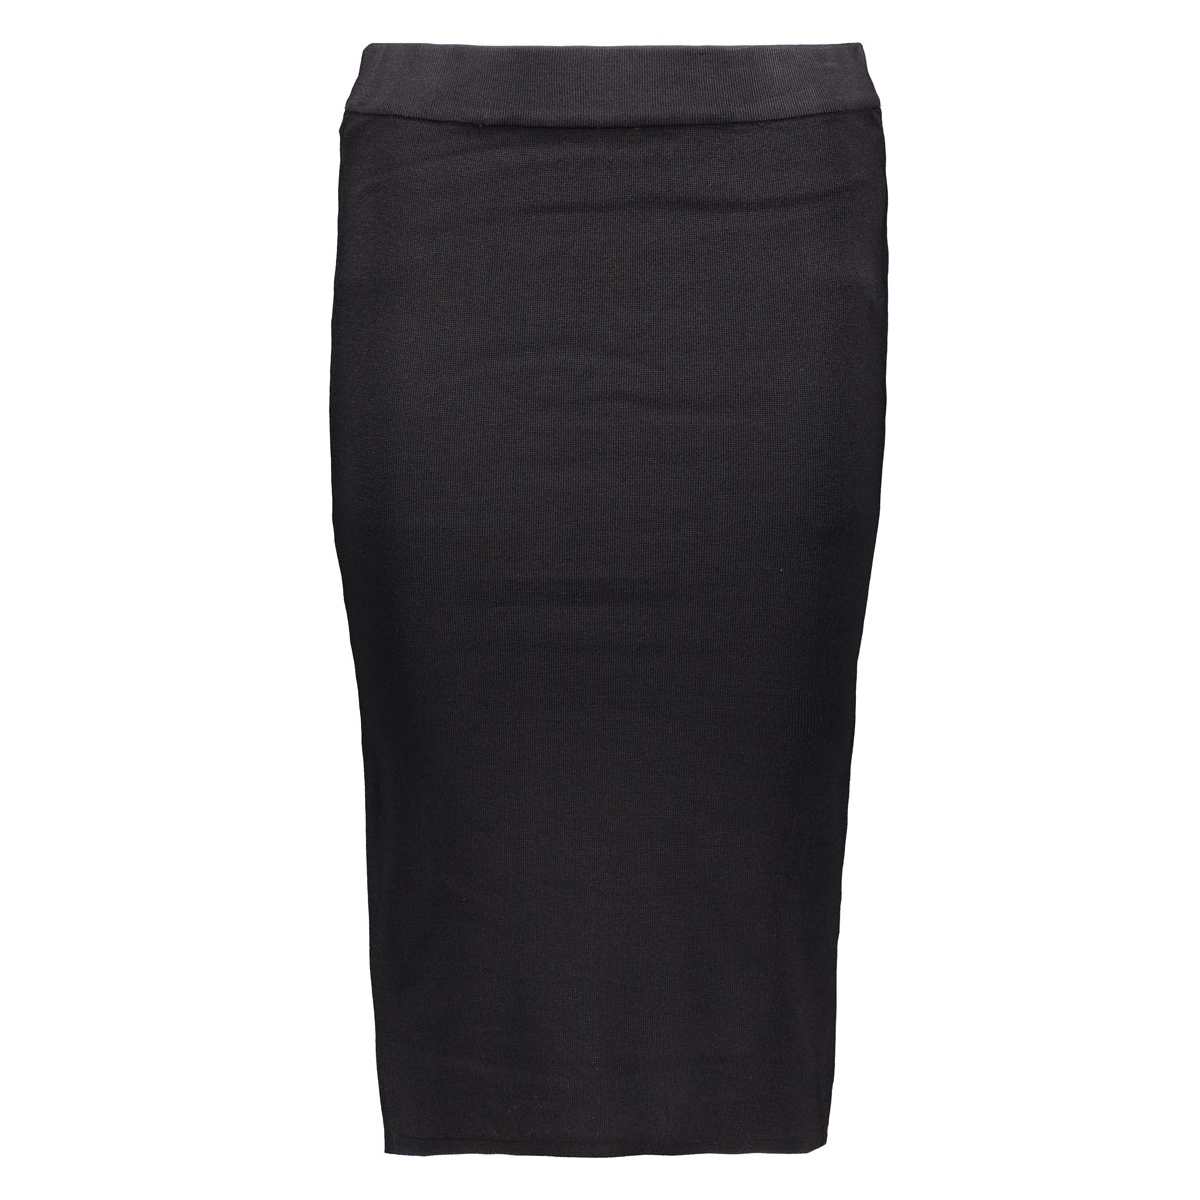 objviola mw calf knit skirt 23023140 object rok black